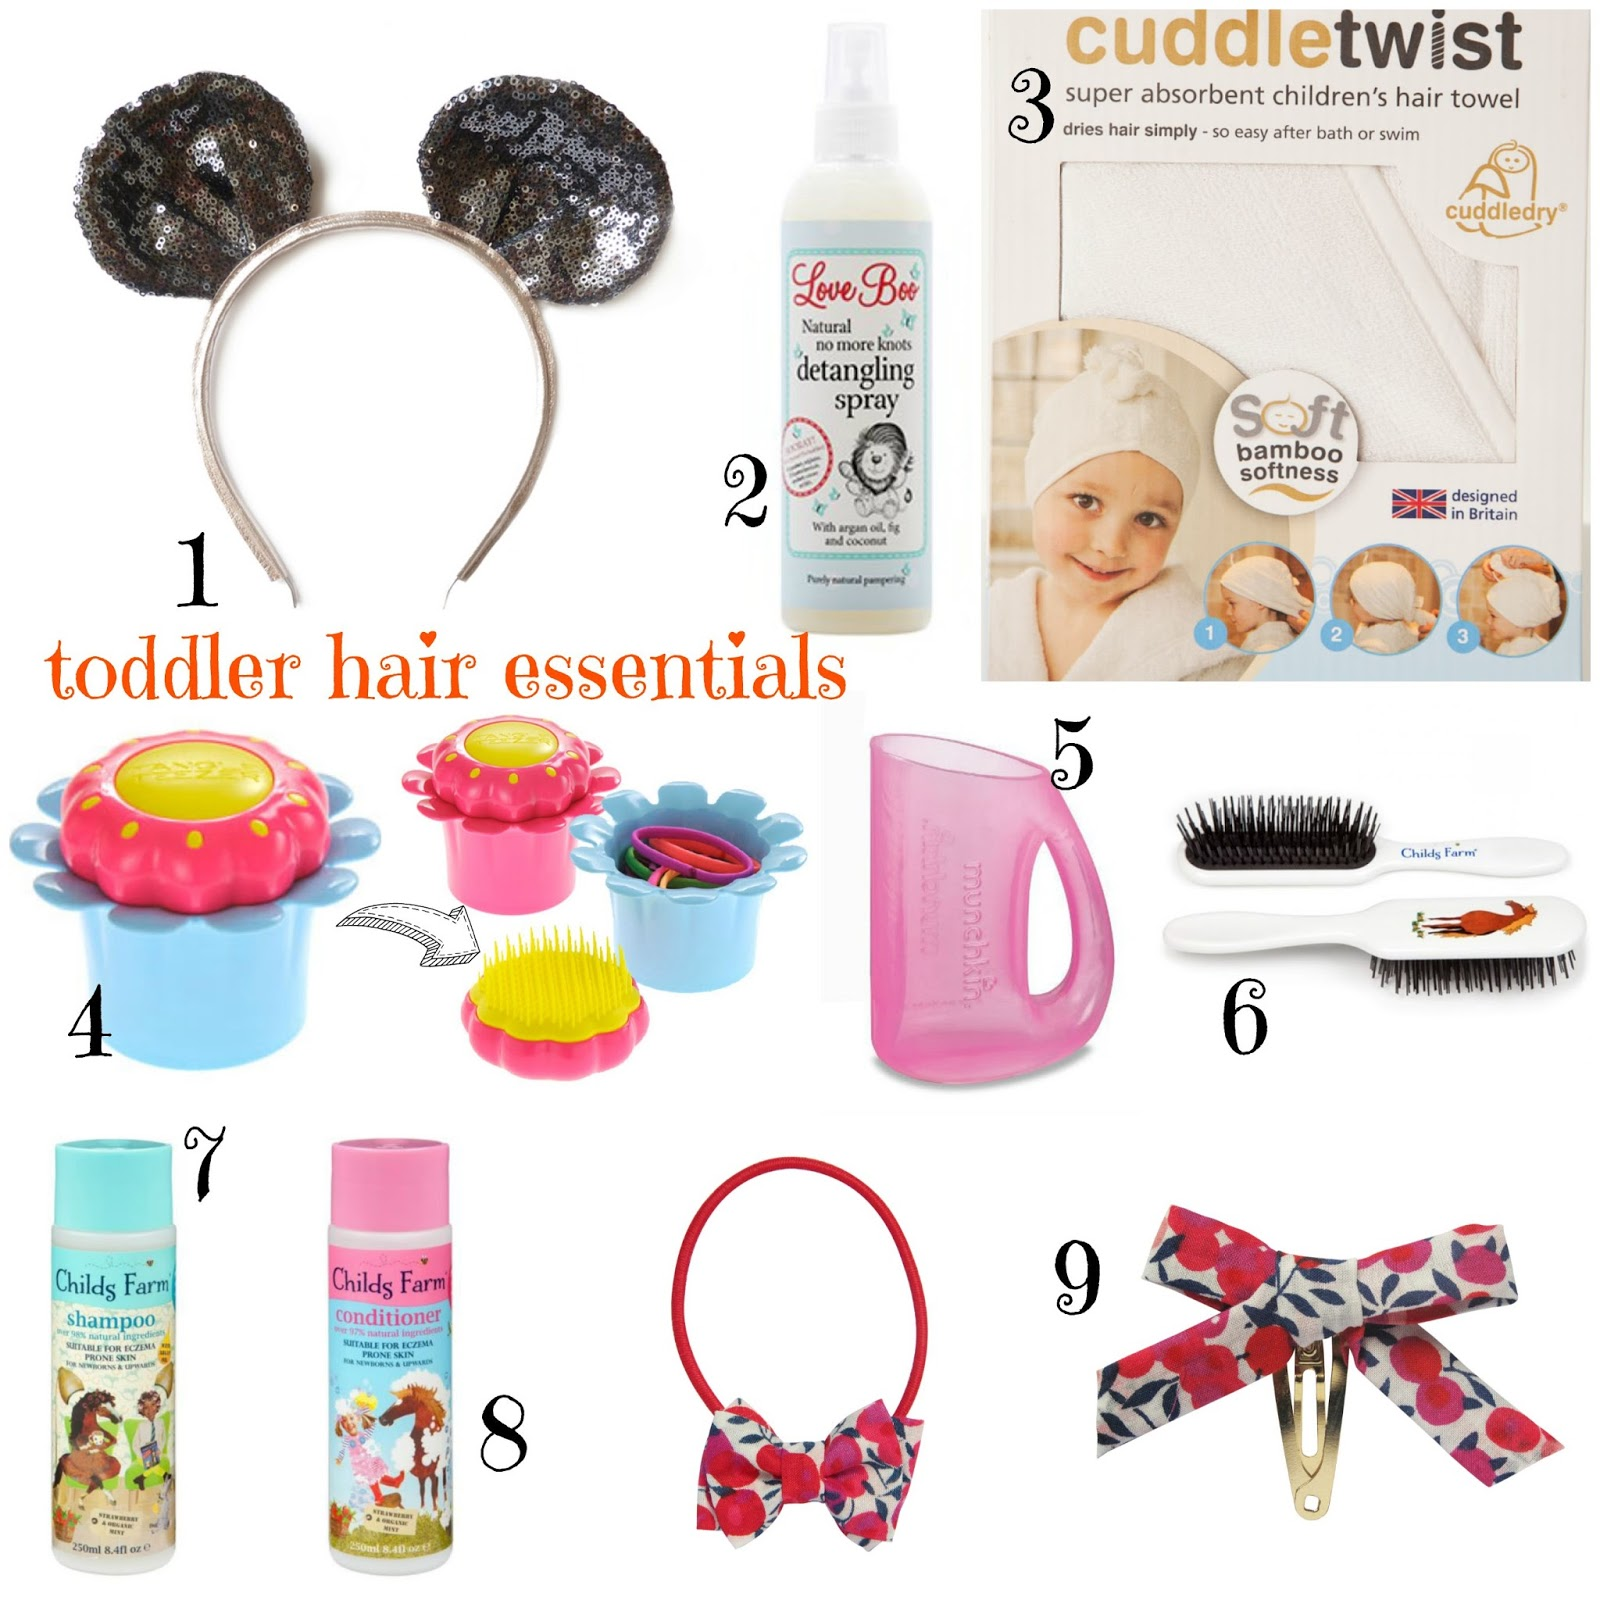 V. I. BASH: Hair, nails & a girly day out with Childs Farm… plus our fave toddler good hair essentials!   mamasVIB   childs farm   hair styles for kids   toddler hair essentials   top 9 essential for kids hair   detangling brushes  shampoo and detangled for kids   magic flower pot hair brush   tangle teezer for ids   munckin shampoo rinser   liberty of london hair clips   woodstock london sparkly mouse ears   knnie mouse style headband   woodstock accessories   cuddle dry   cuddle twist   hair tips for kids   hair towel for kids   super absorbent towel for hair   neveill hair and beauty   hair salon   superdrug   beauty [produsts  blogger   stlist   halo braid   hair plaits   kids hair  giveaway   kids beauty competitions   mamasVIb   bonita turner   win